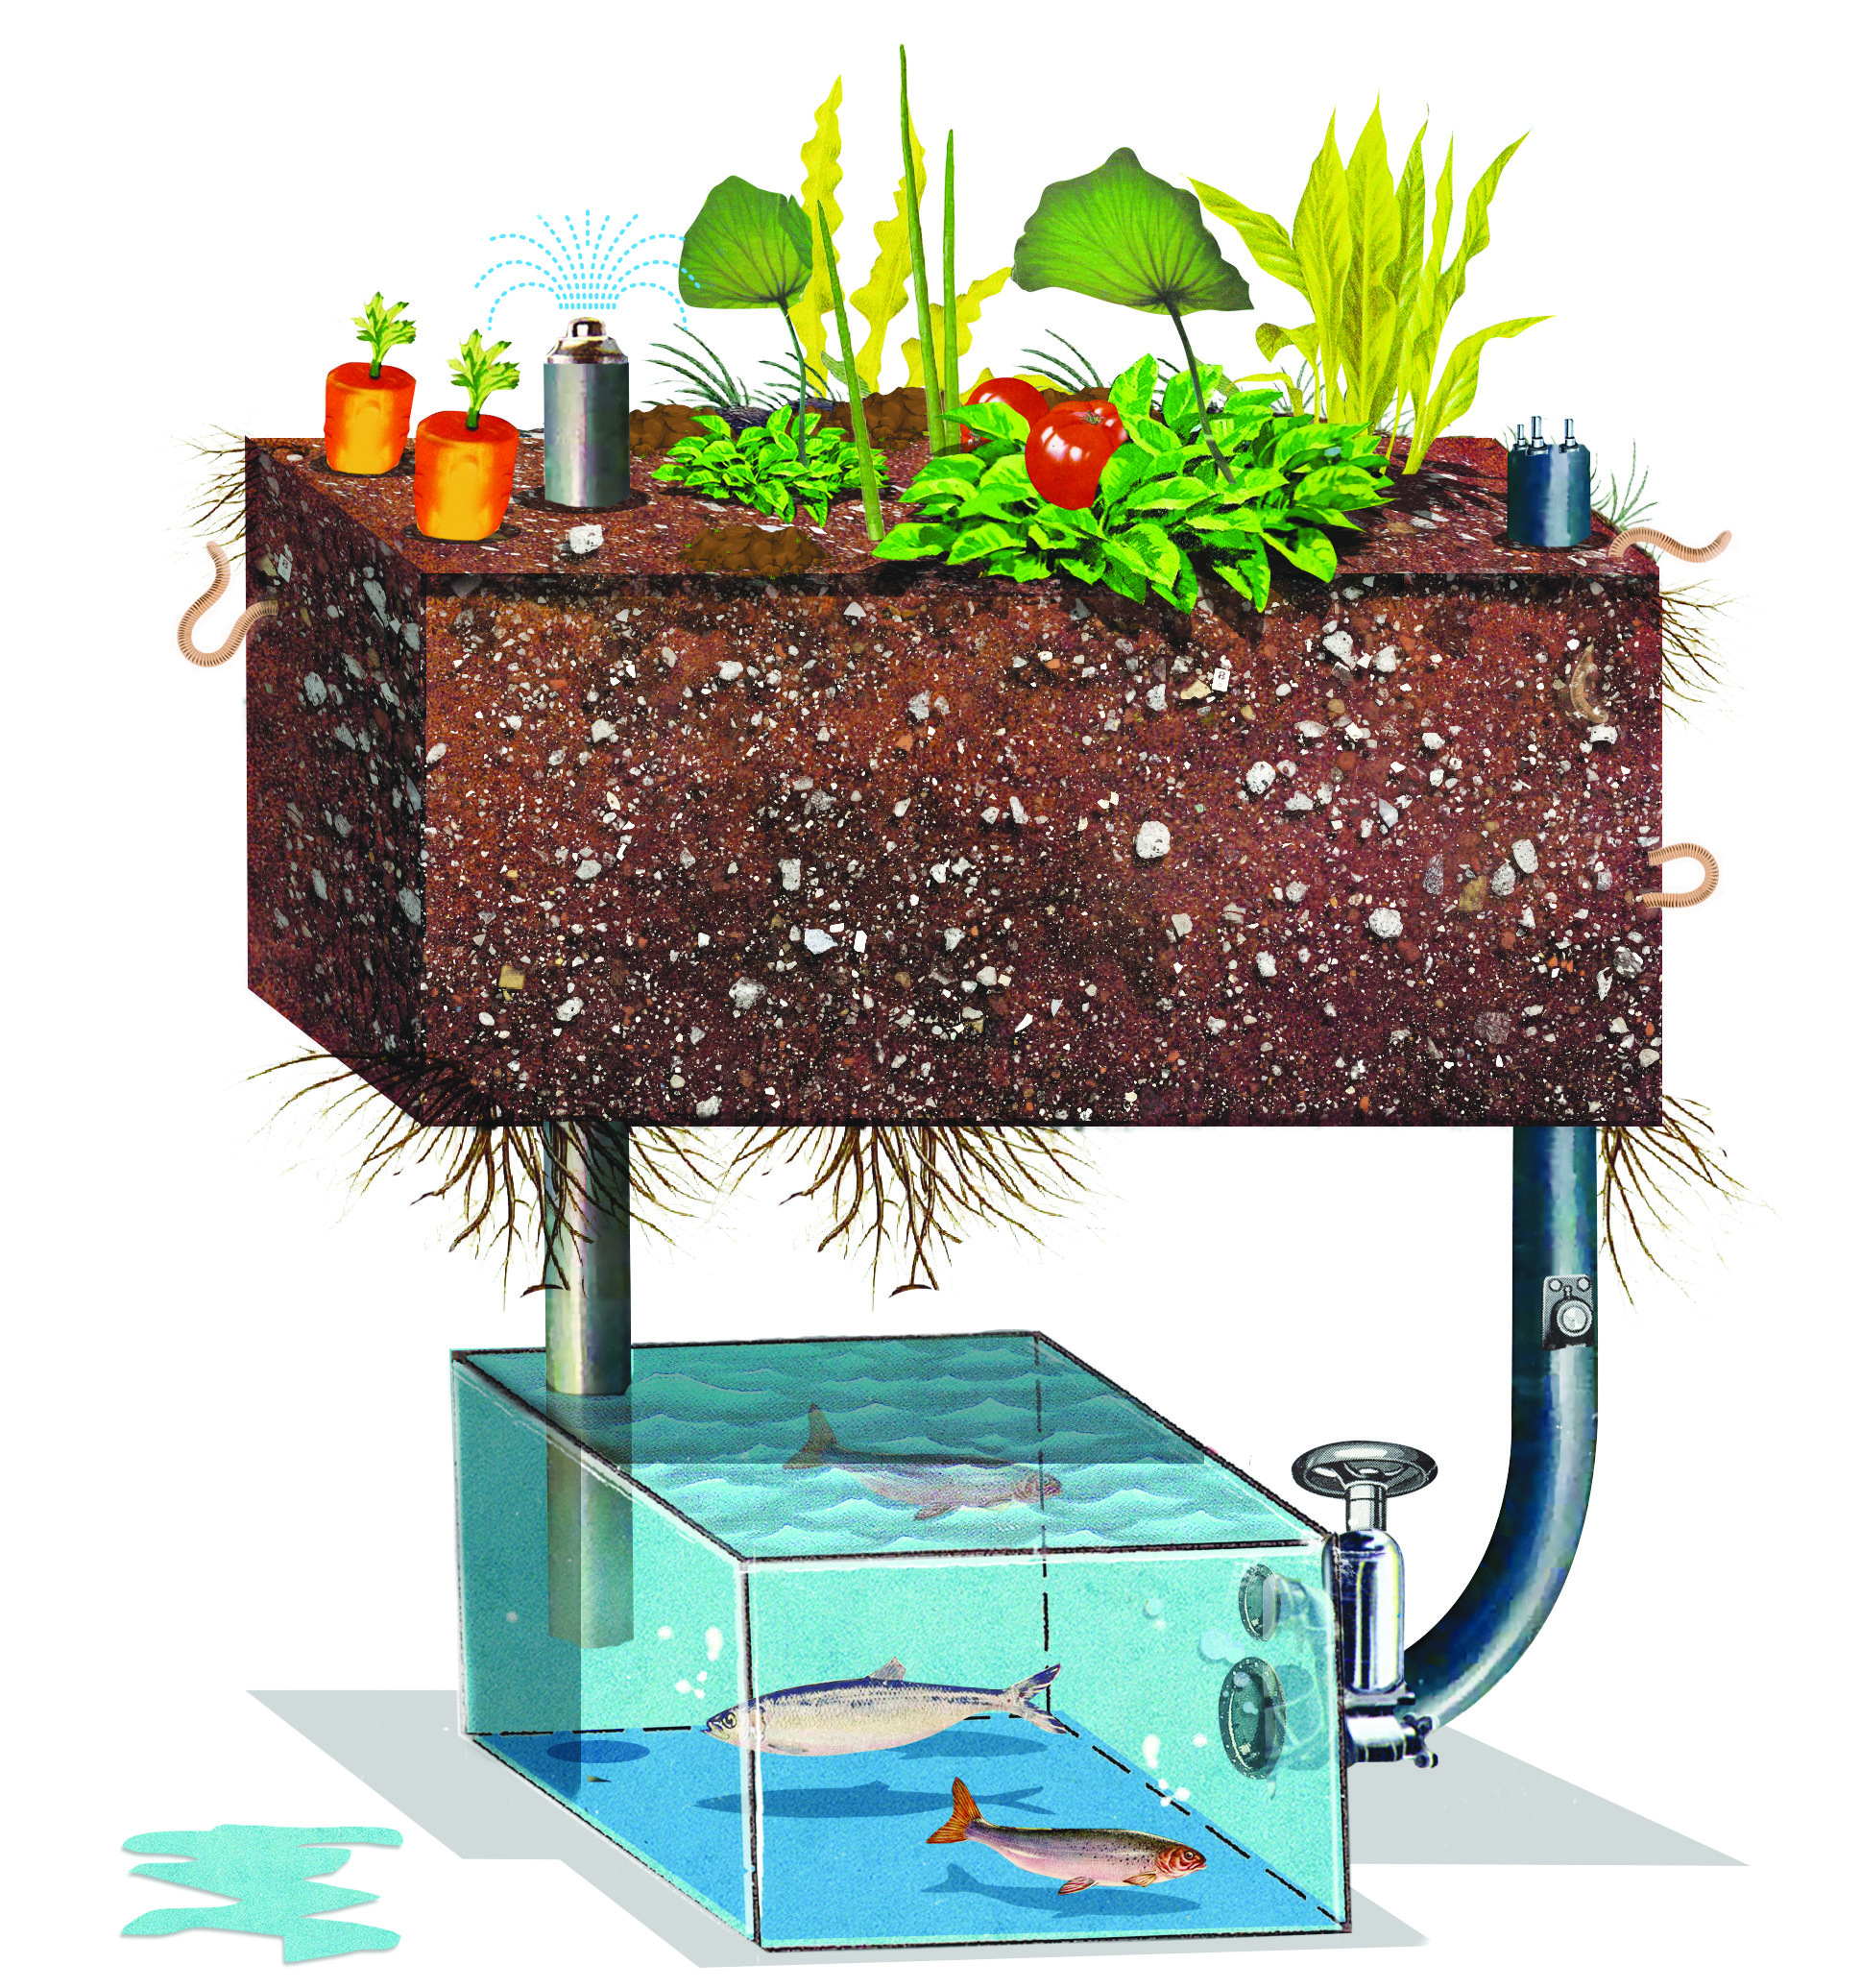 hight resolution of schematic diagram of aquaponic